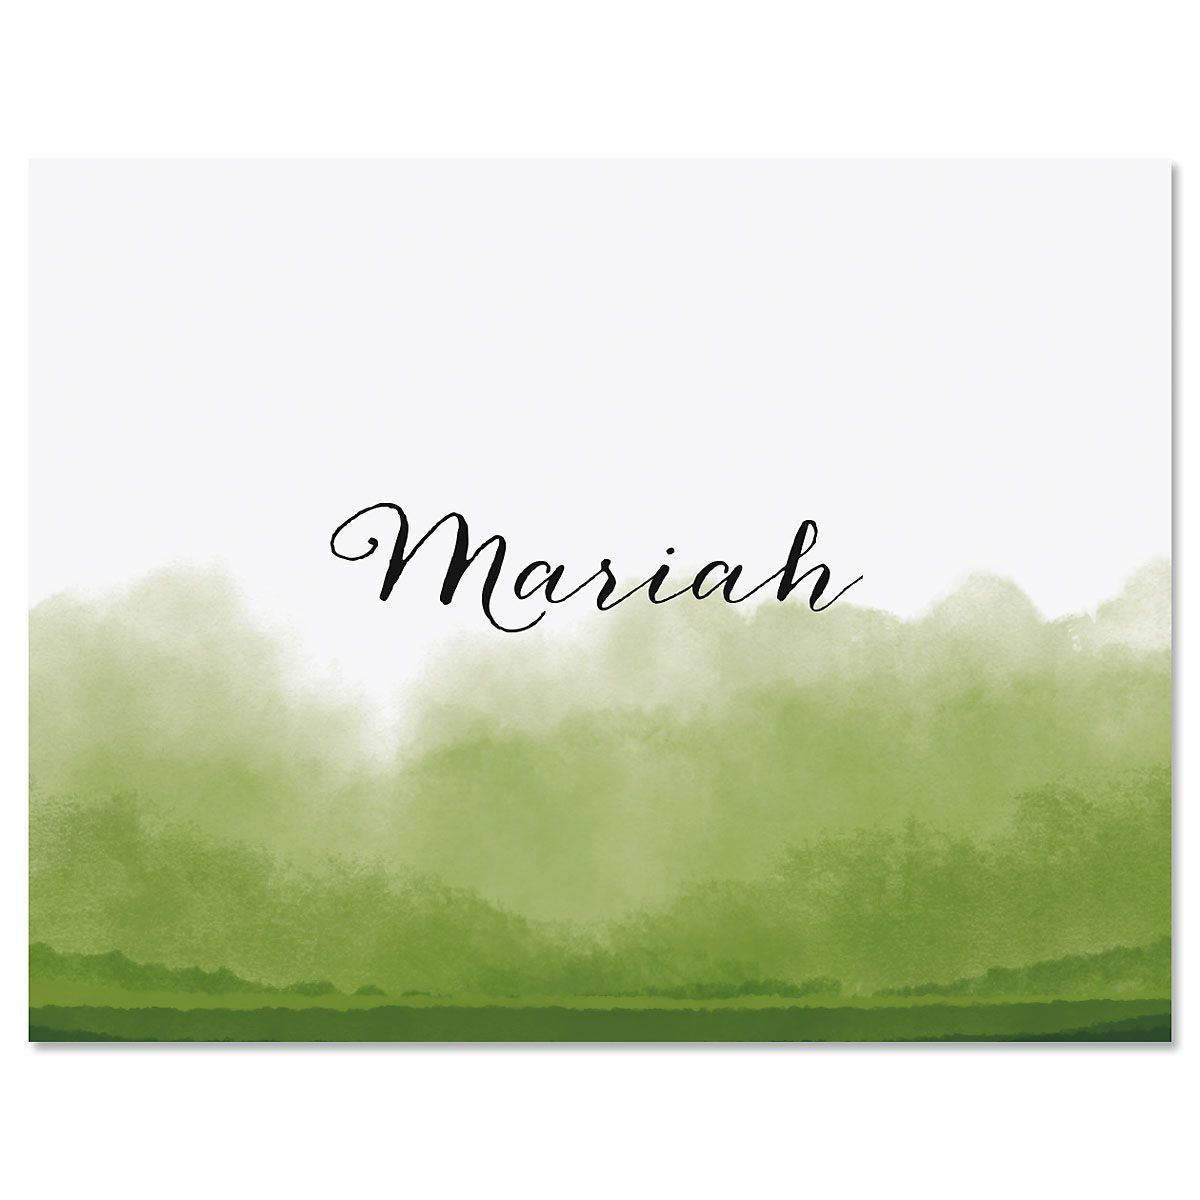 Dipped Watercolor Personalized Note Cards